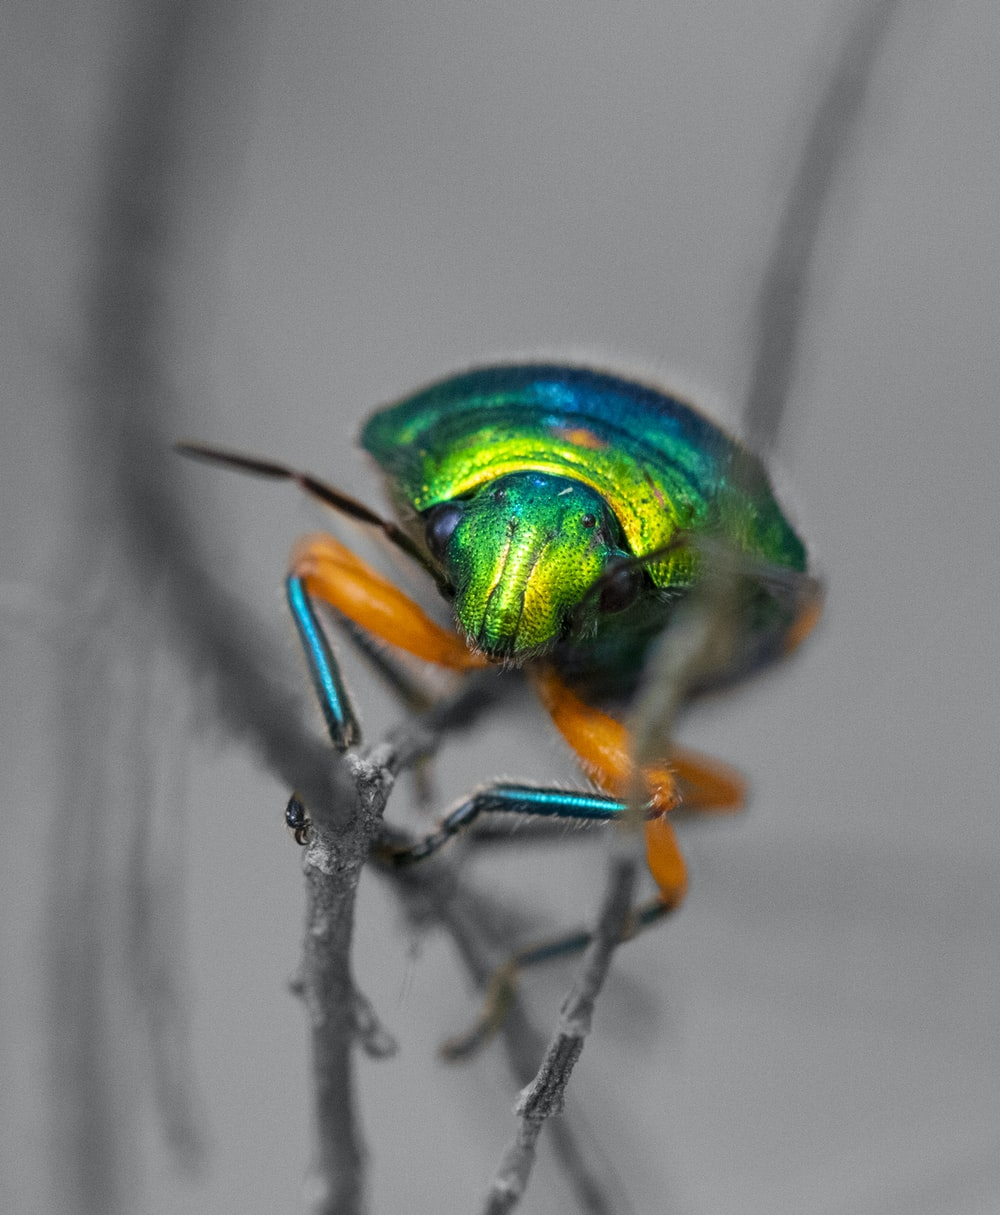 green and blue winged insect